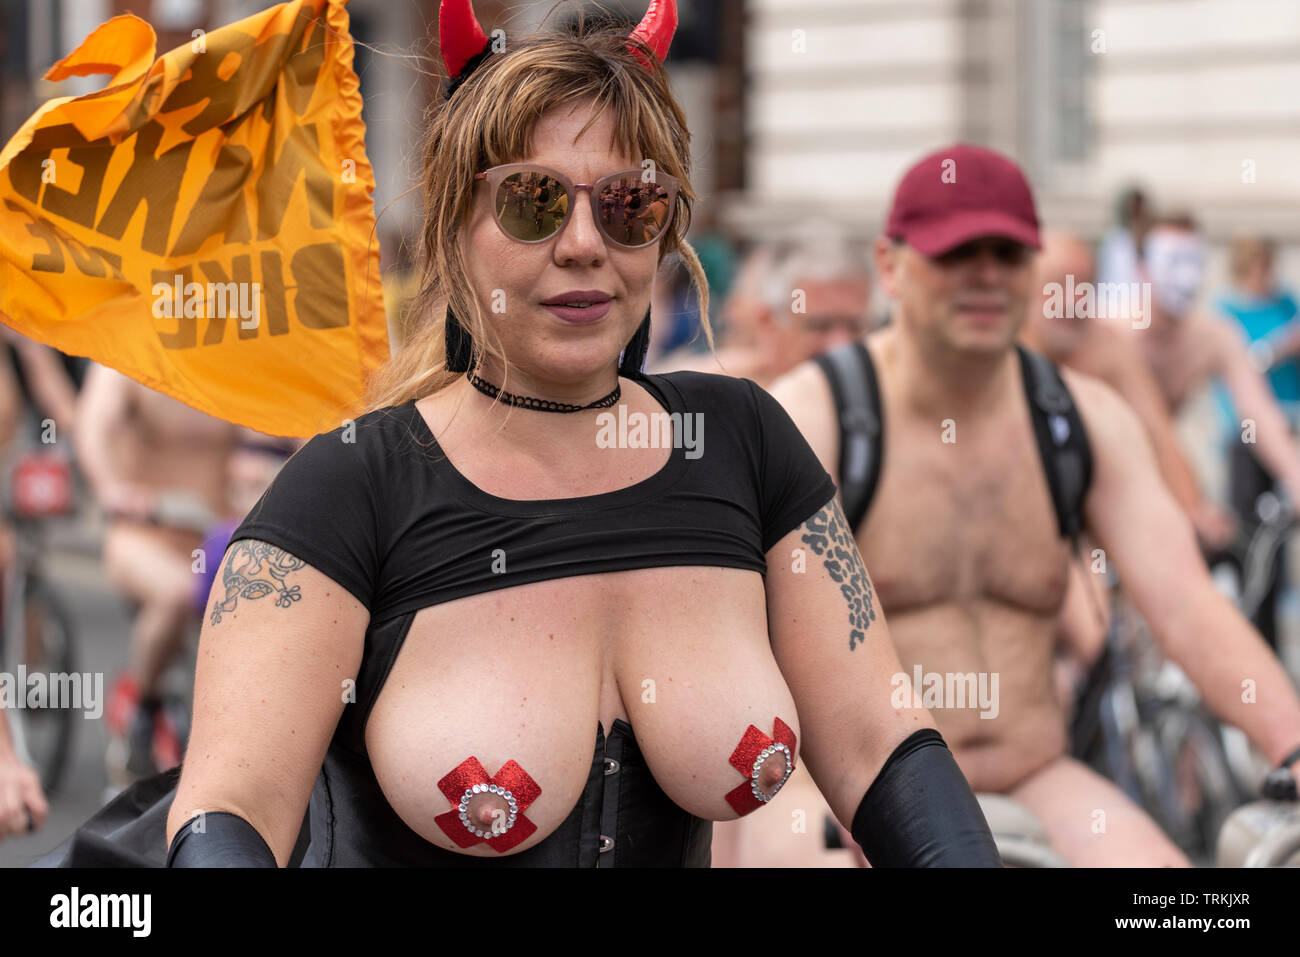 world-naked-bike-ride-london-uk-part-of-global-protest-movement-with-rides-in-cities-around-the-world-raising-awareness-of-issues-such-as-safety-of-cyclists-on-the-road-reducing-oil-dependence-and-saving-the-planet-in-a-carnival-atmosphere-riders-are-encouraged-to-wear-body-paint-and-costumes-rather-than-being-overtly-naked-TRKJXR.jpg